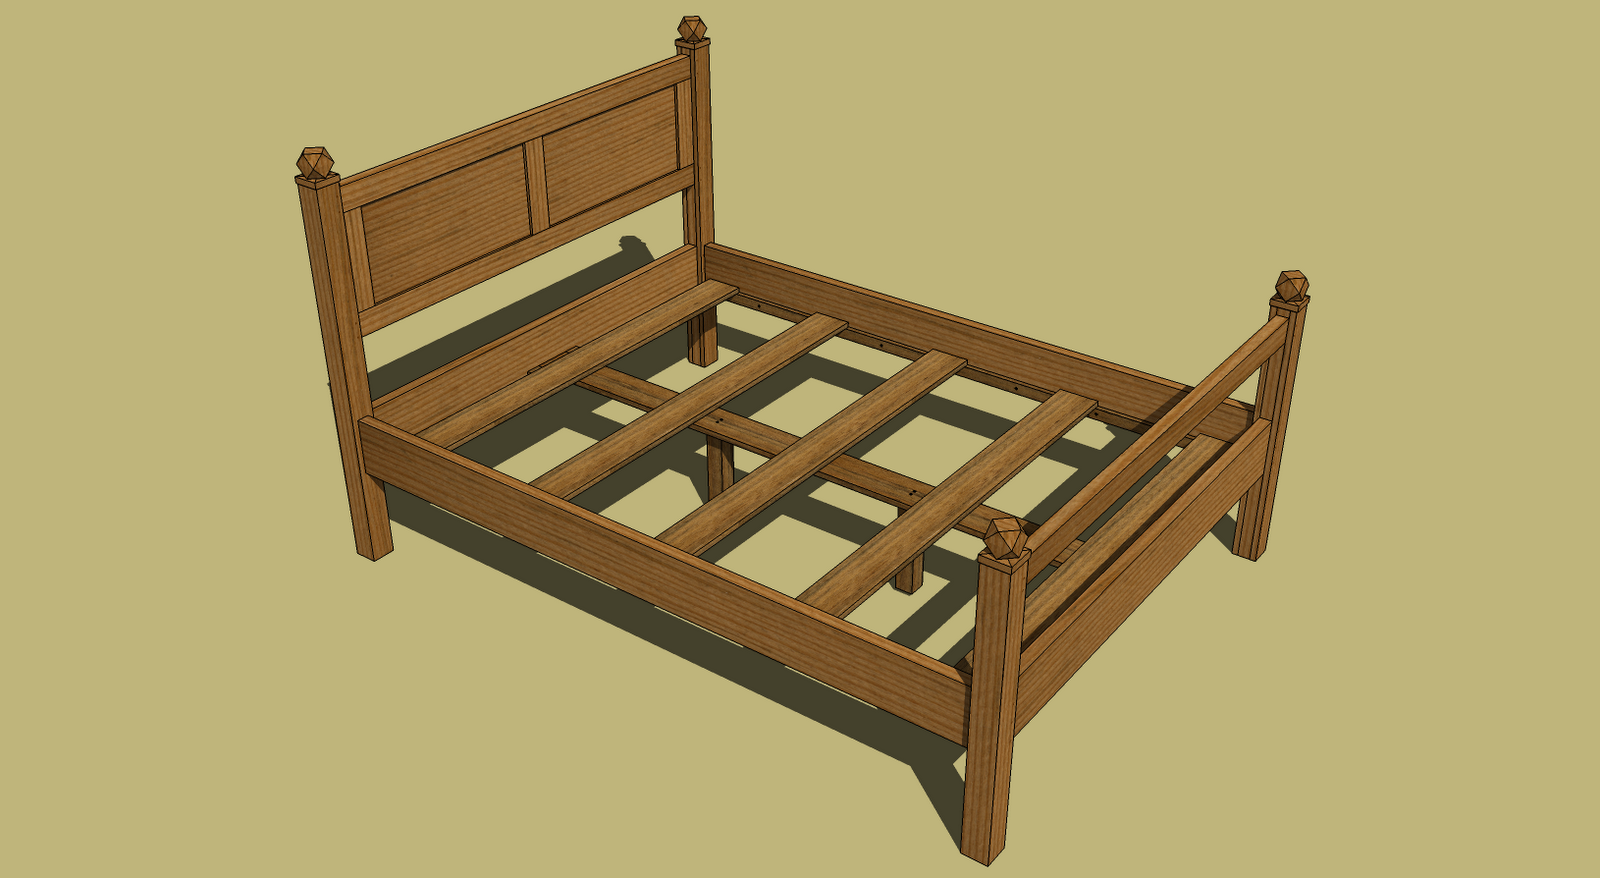 woodworking projects in sketchup